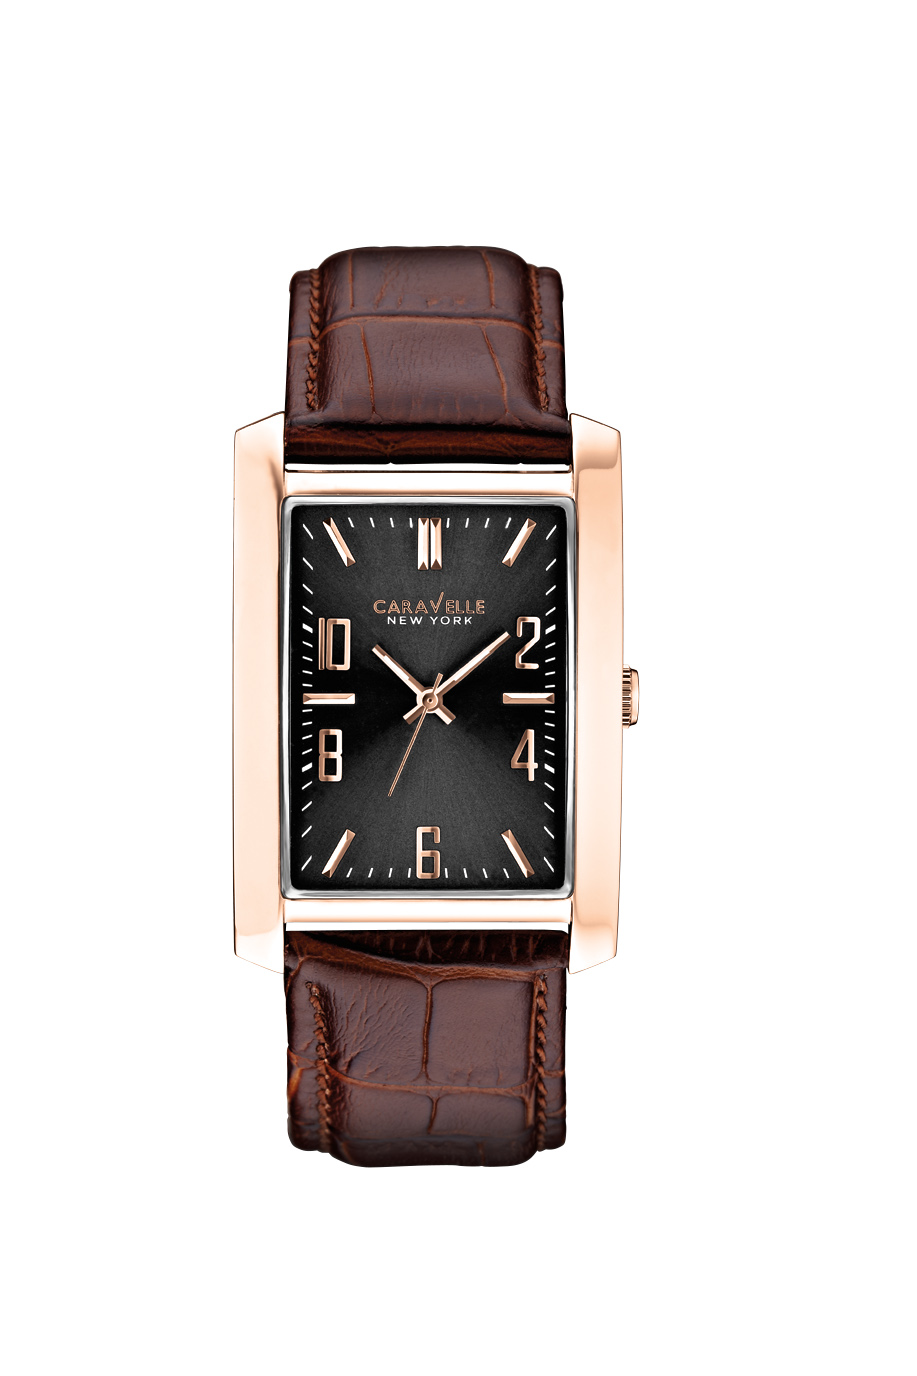 New York watch for men - Pink gold-tone stainless steel case & dark brown leather strap.